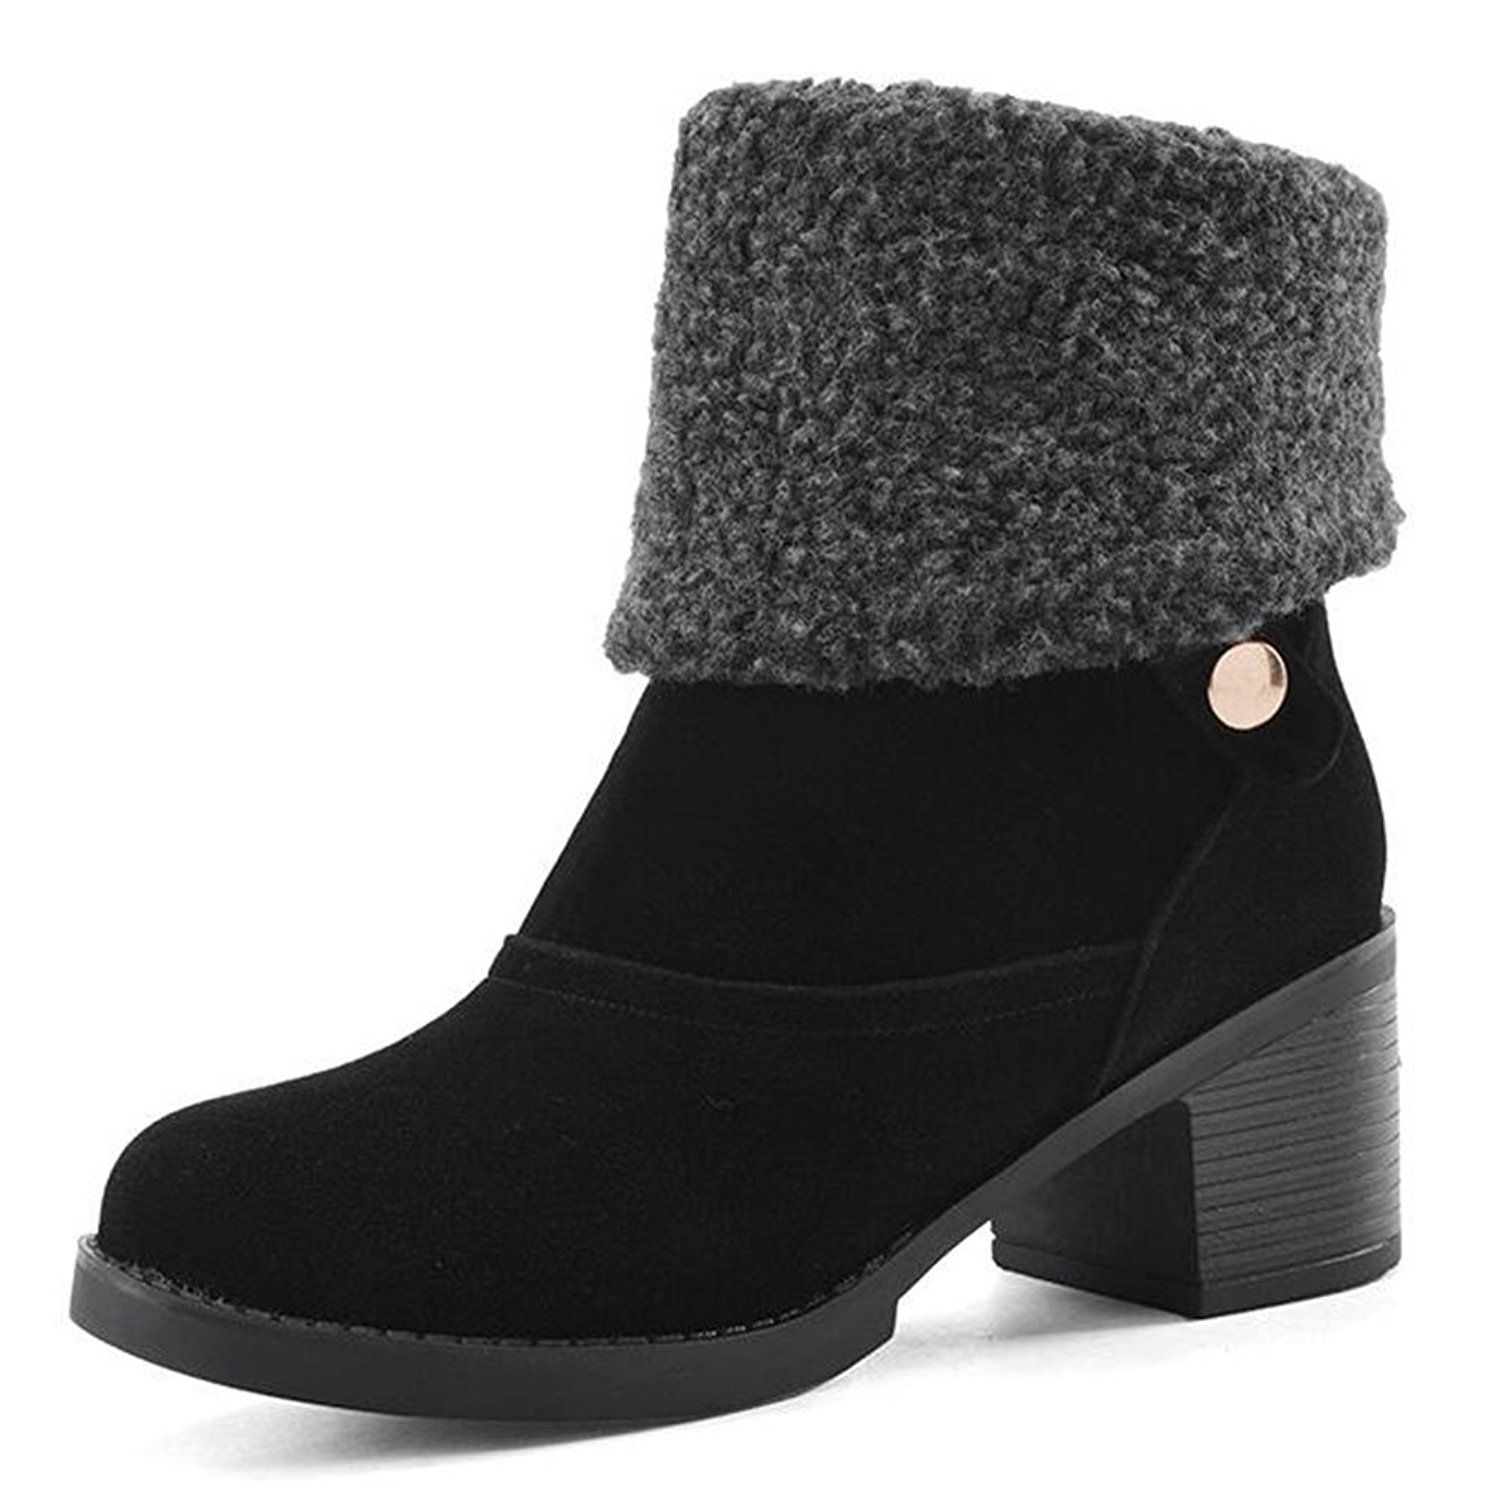 Women's Stylish Solid Round Toe Slouchy Mid Chunky Heel Knight Boots